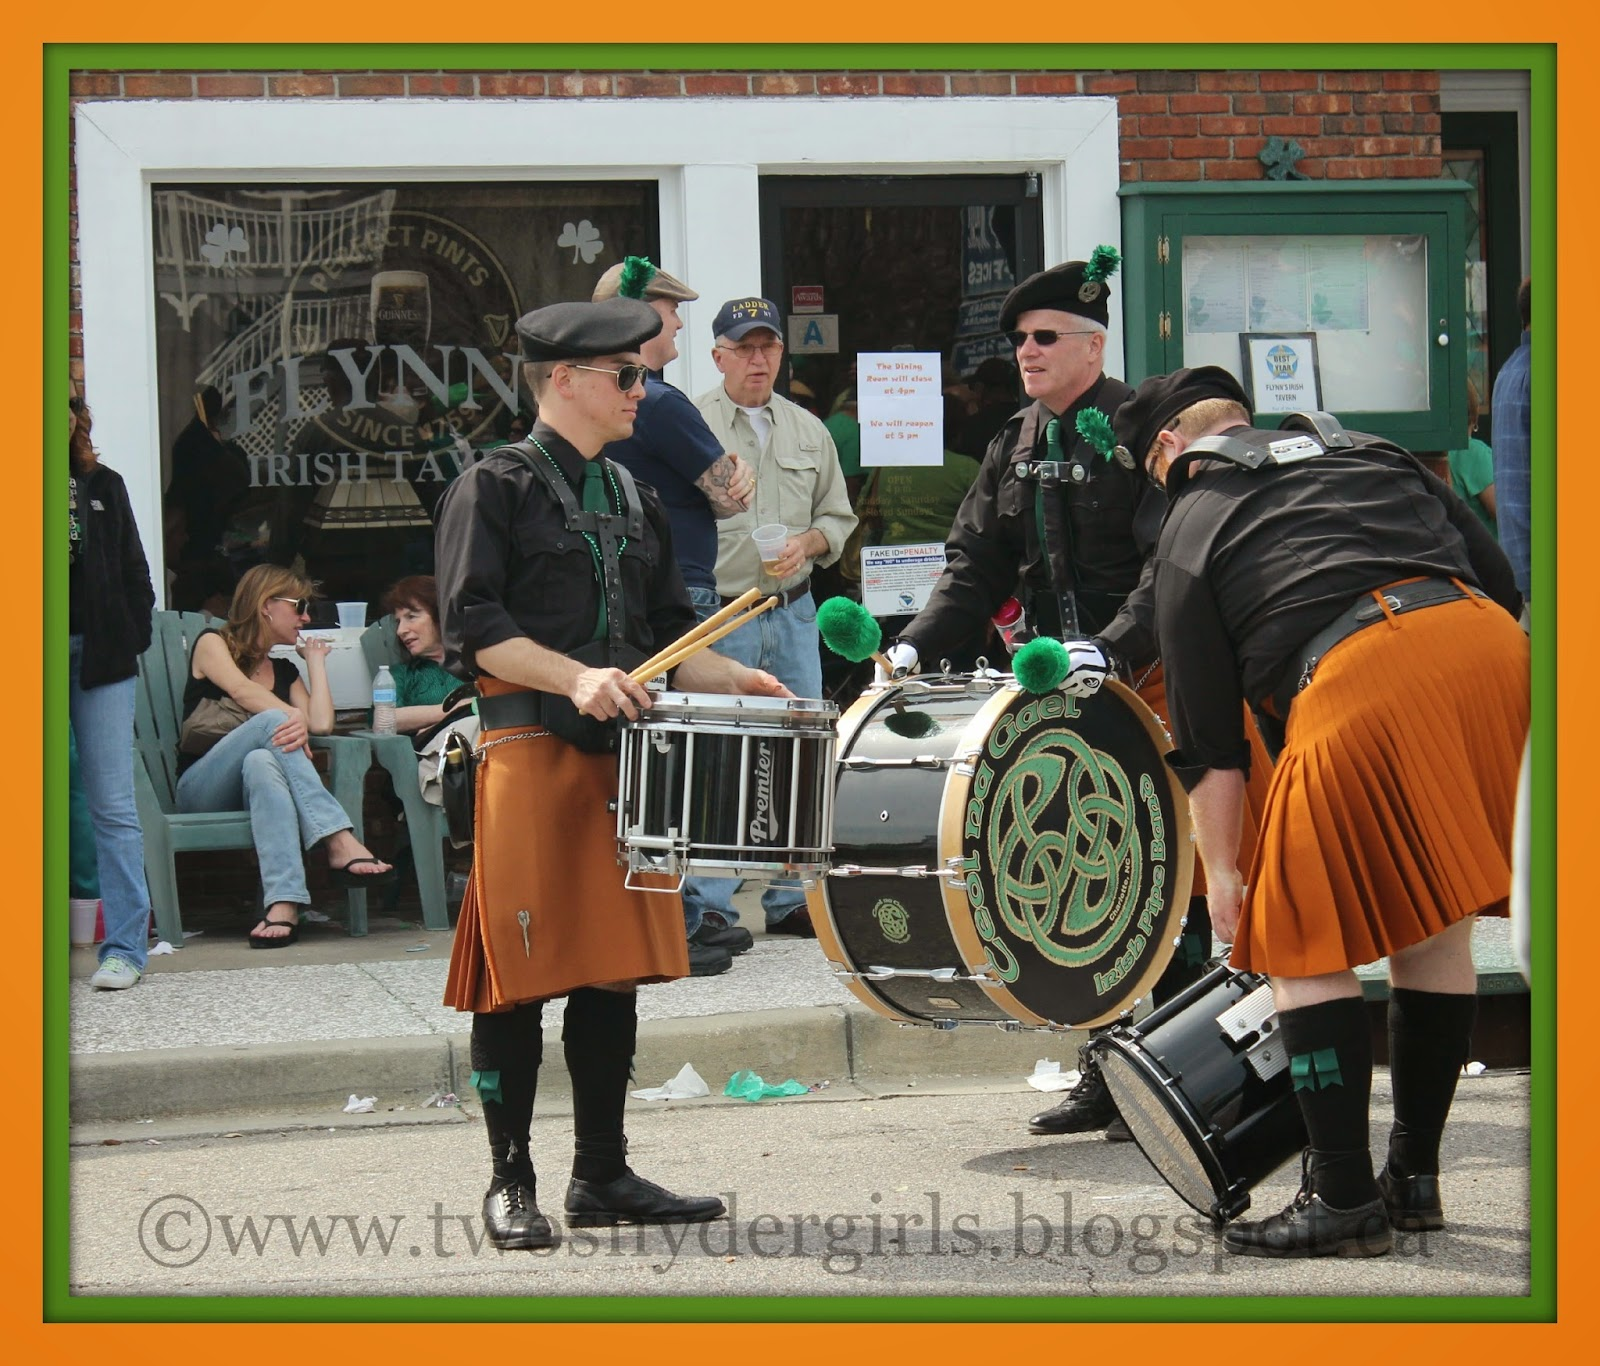 St. Patrick's Day Drum Band